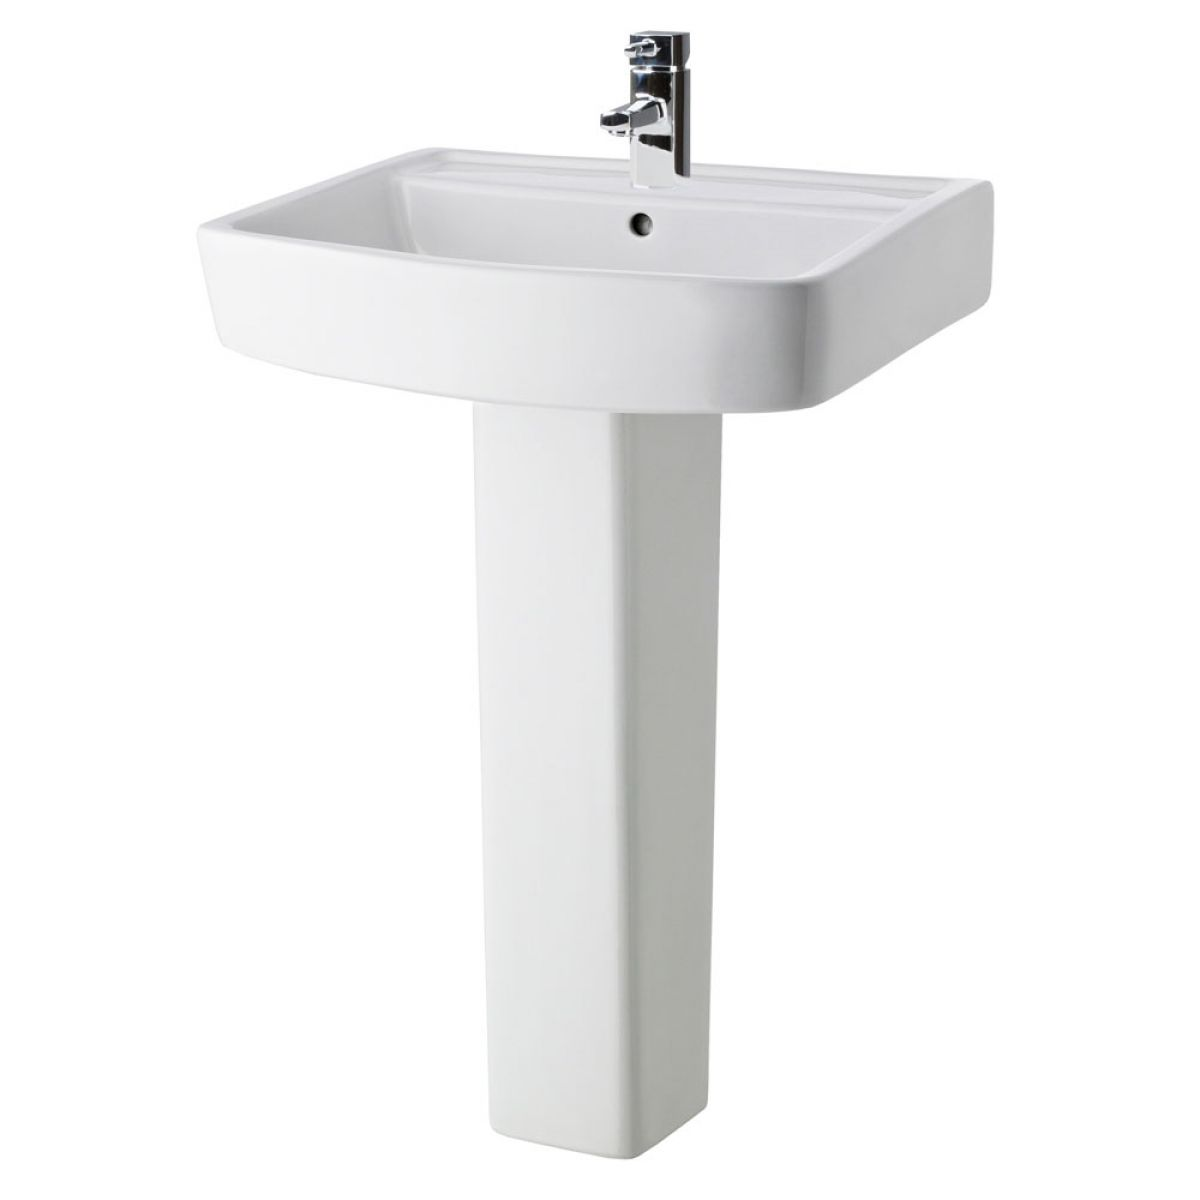 Premier Bliss 1 Tap Hole Basin with Full Pedestal 520mm